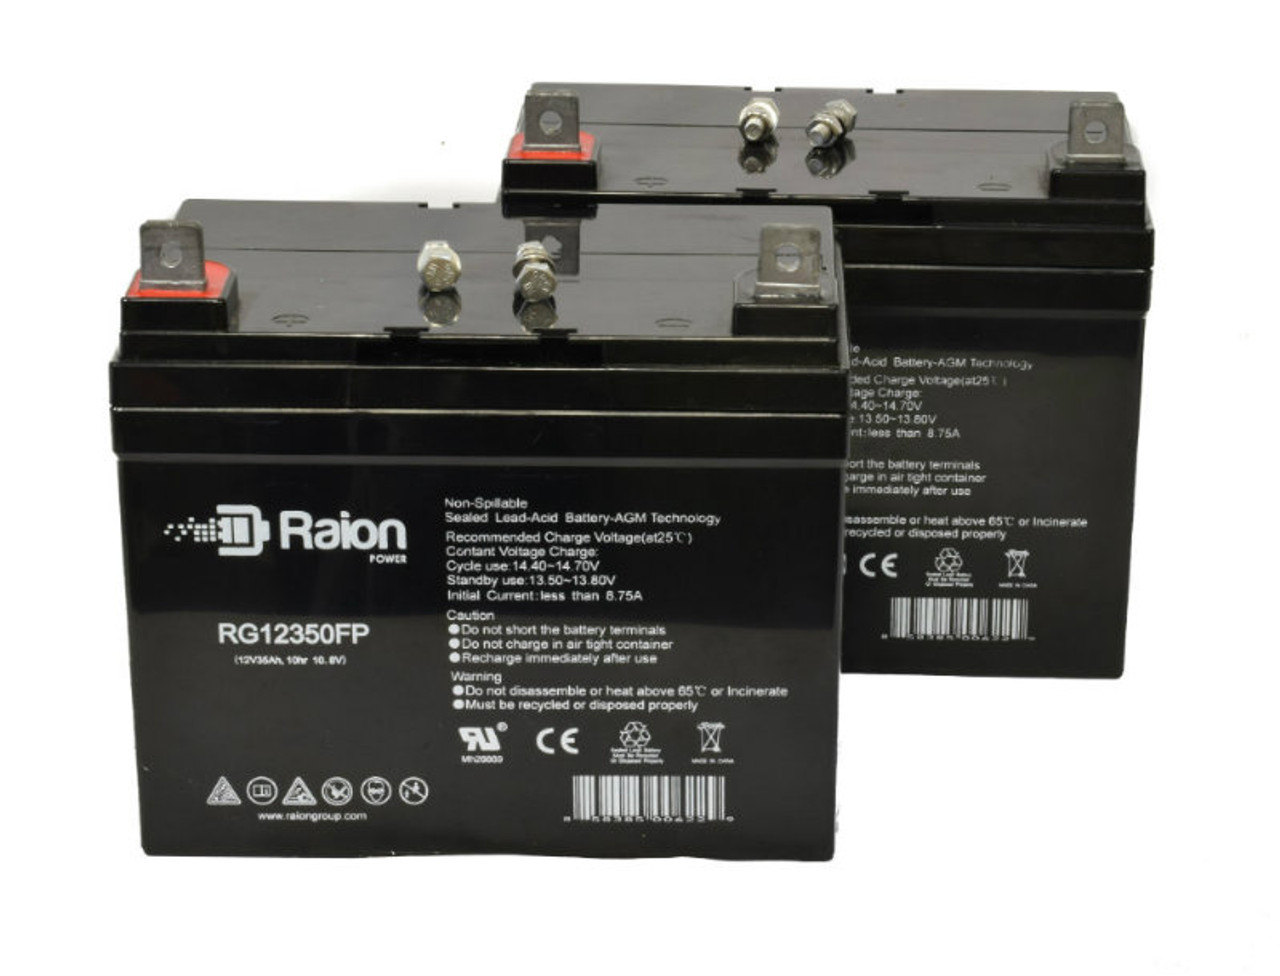 Raion Power RG12350FP Replacement Wheelchair Battery For Golden Technology Alero 16 Inch (2 Pack)